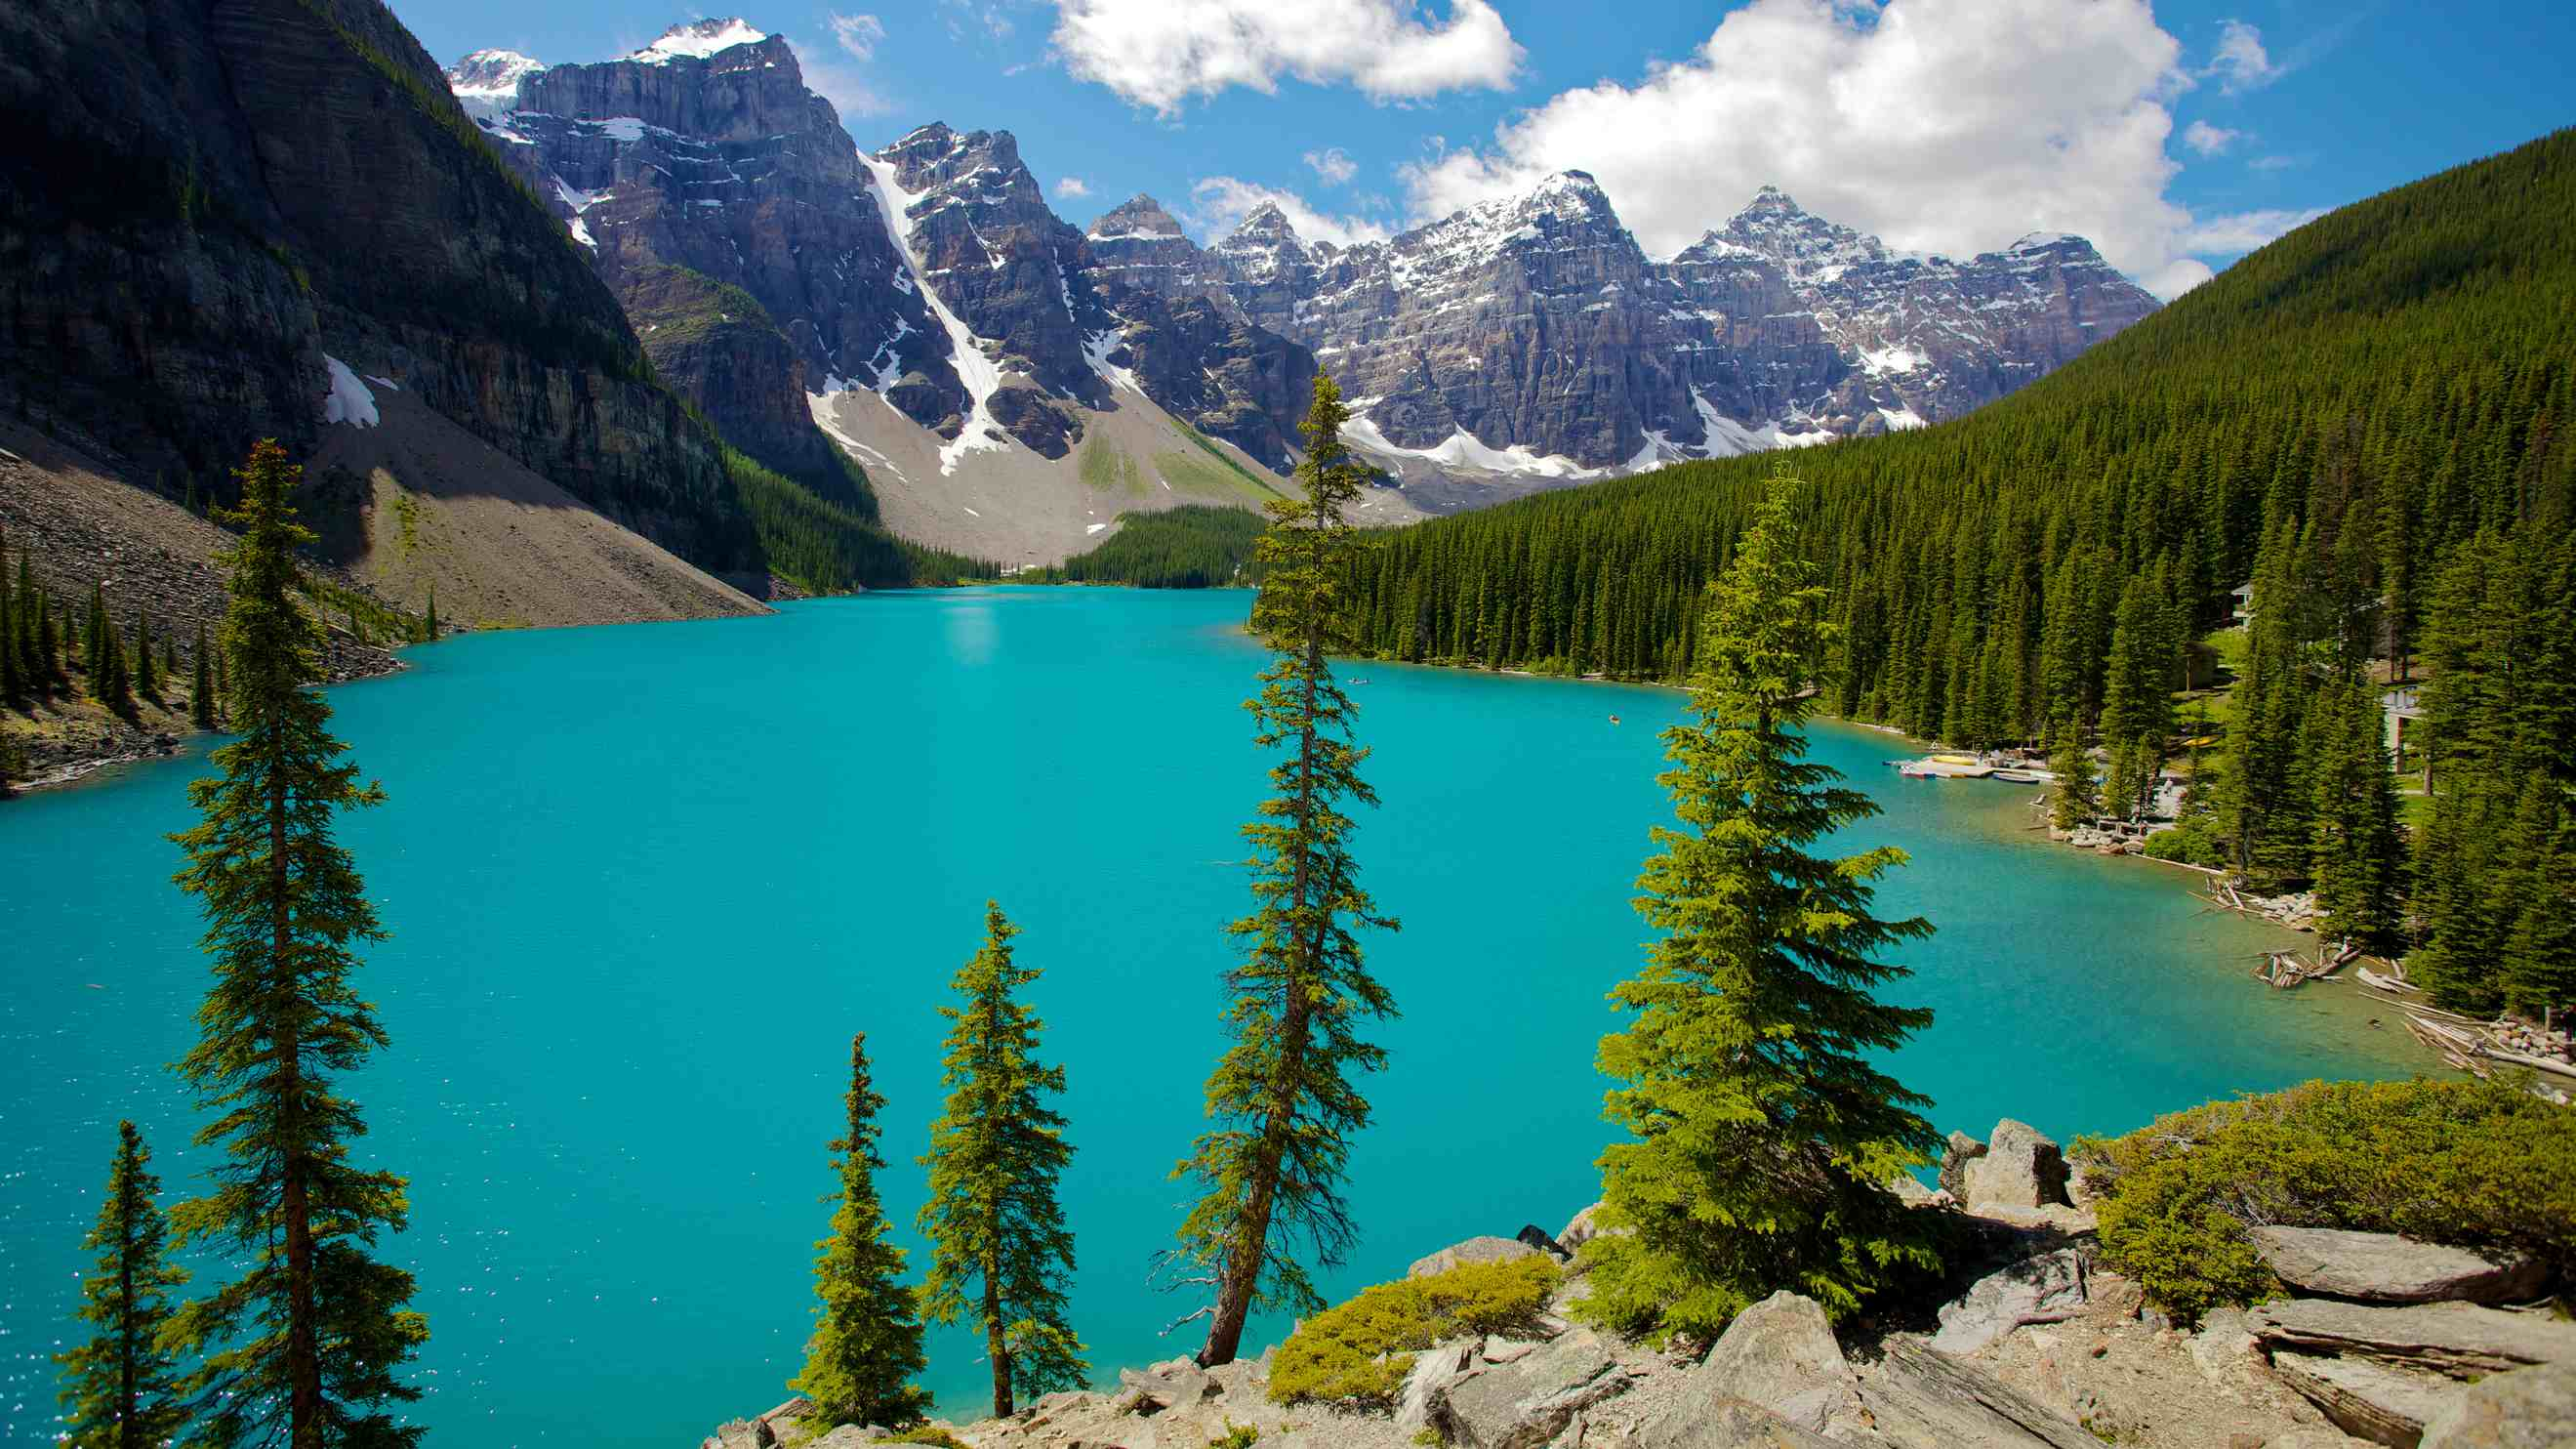 banff national park vacations 2019 package save up to. Black Bedroom Furniture Sets. Home Design Ideas